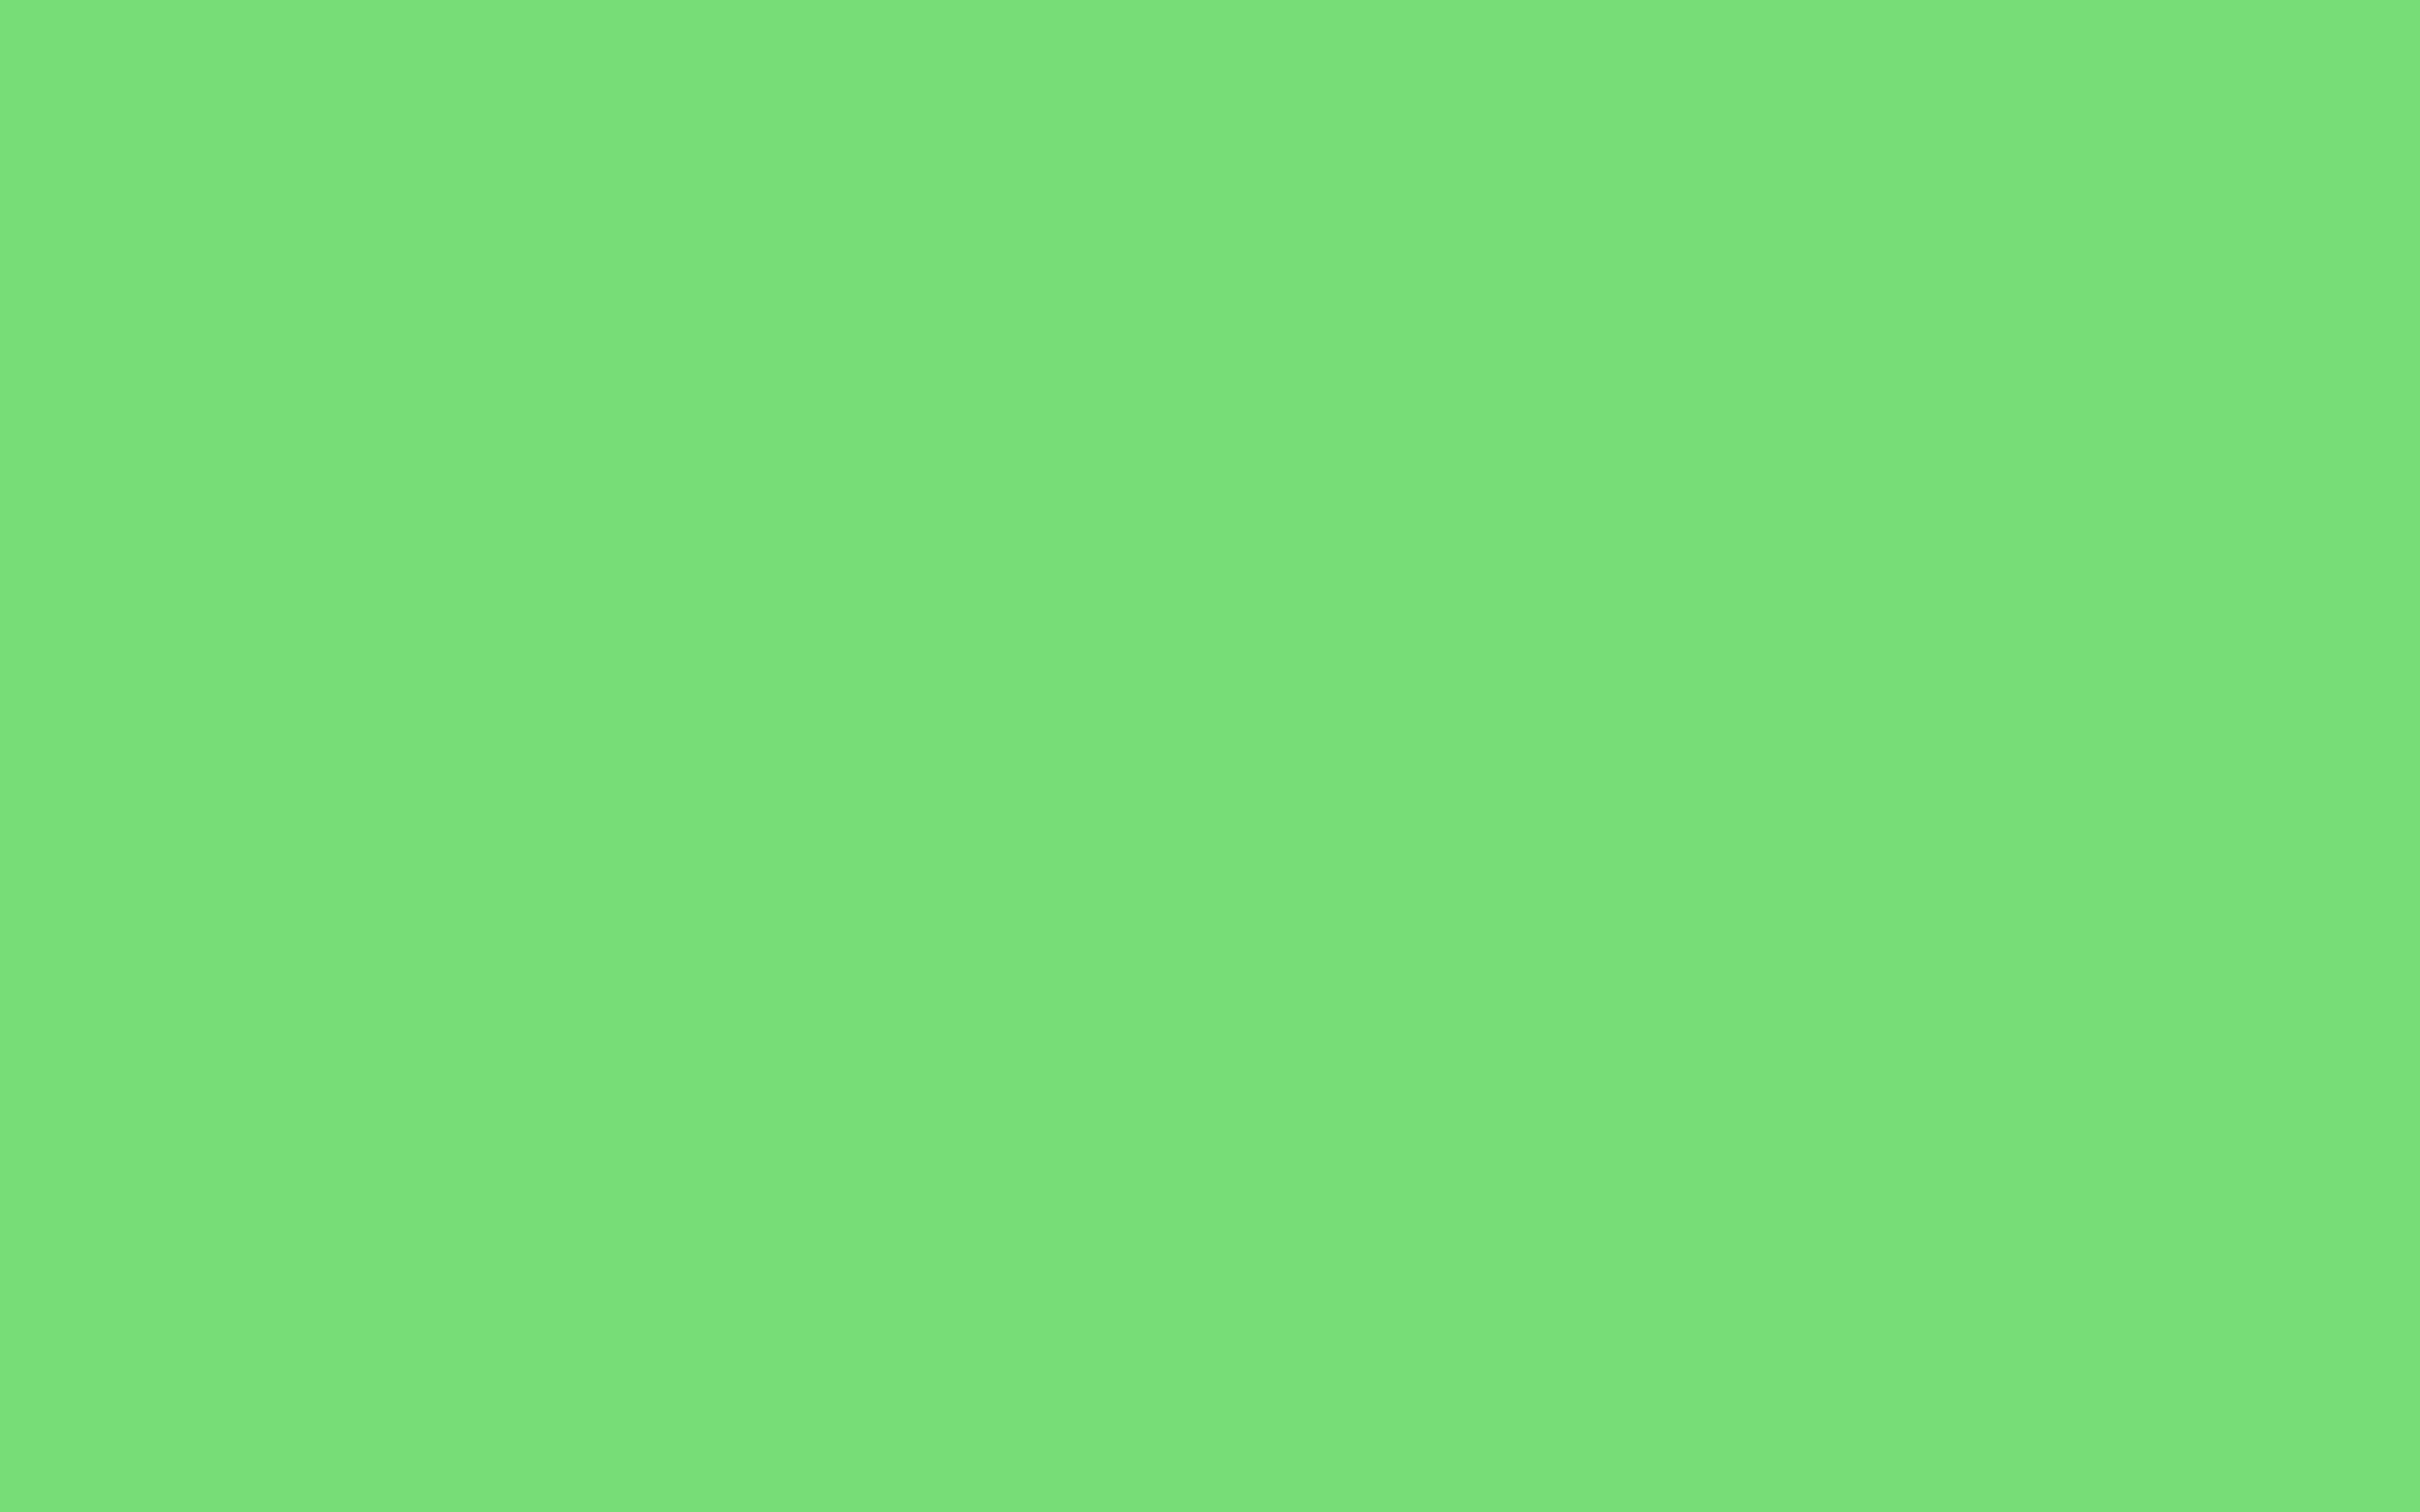 2560x1600 Pastel Green Solid Color Background